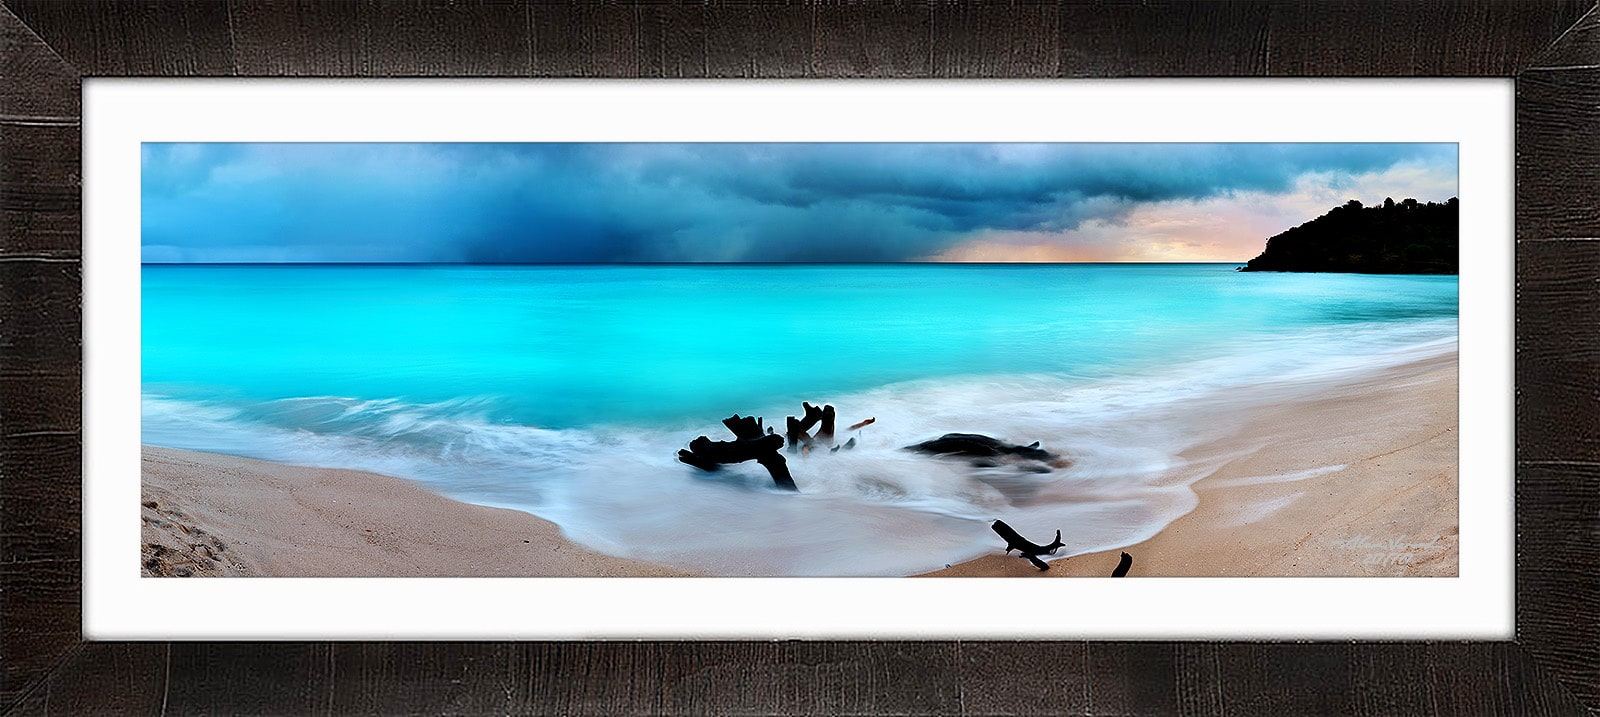 Framed Fine Art Photographic Print